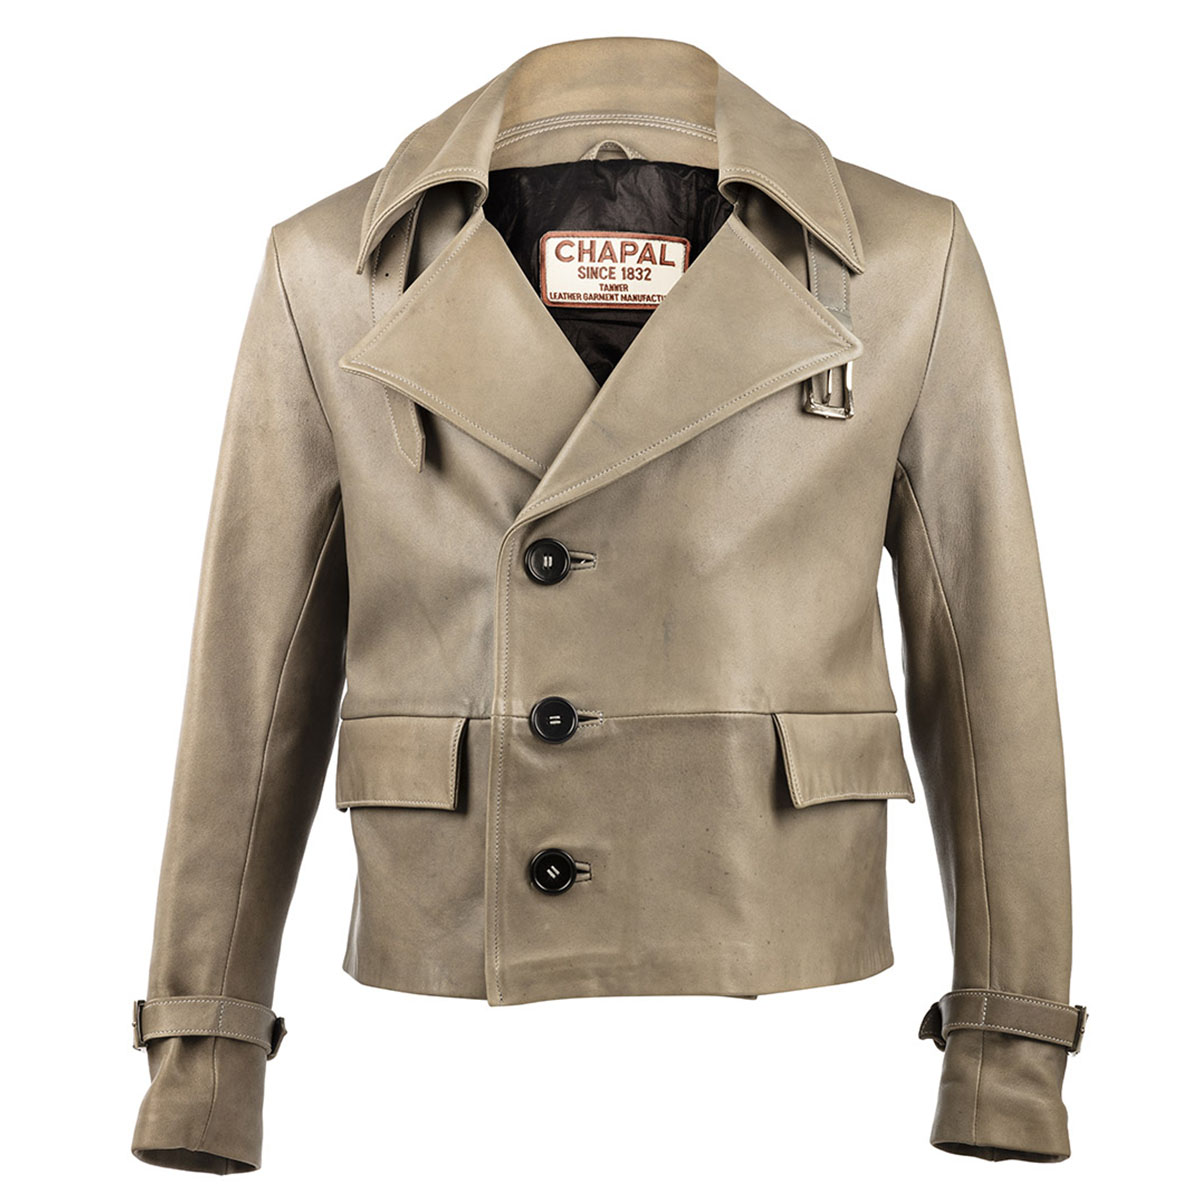 7f735d5ce23 Light Grey Caban Leather Jacket by Chapal buy at SUNDAY30.COM